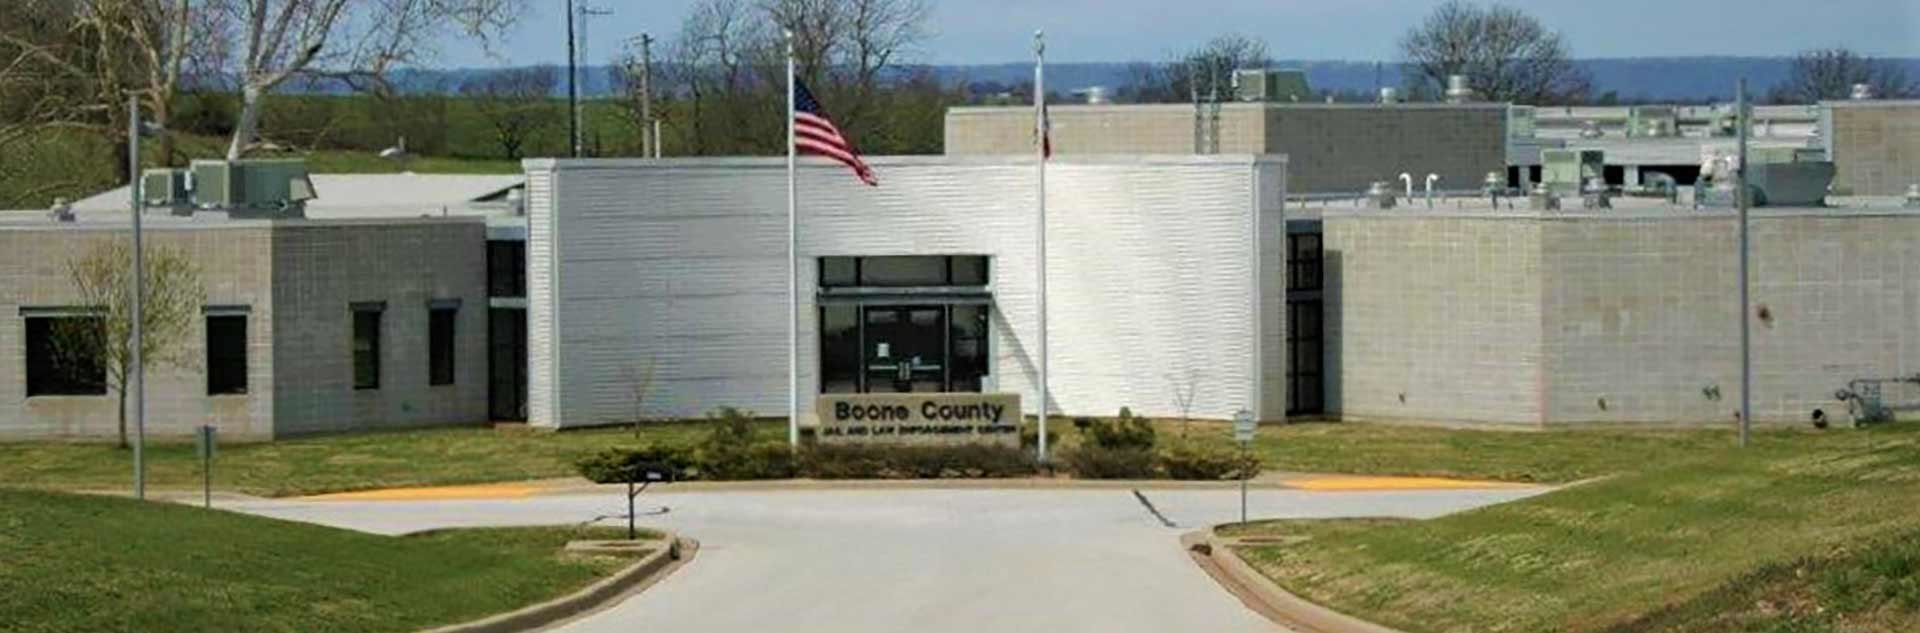 Boone County Arkansas Jail and Law Enforcement Center Entrance